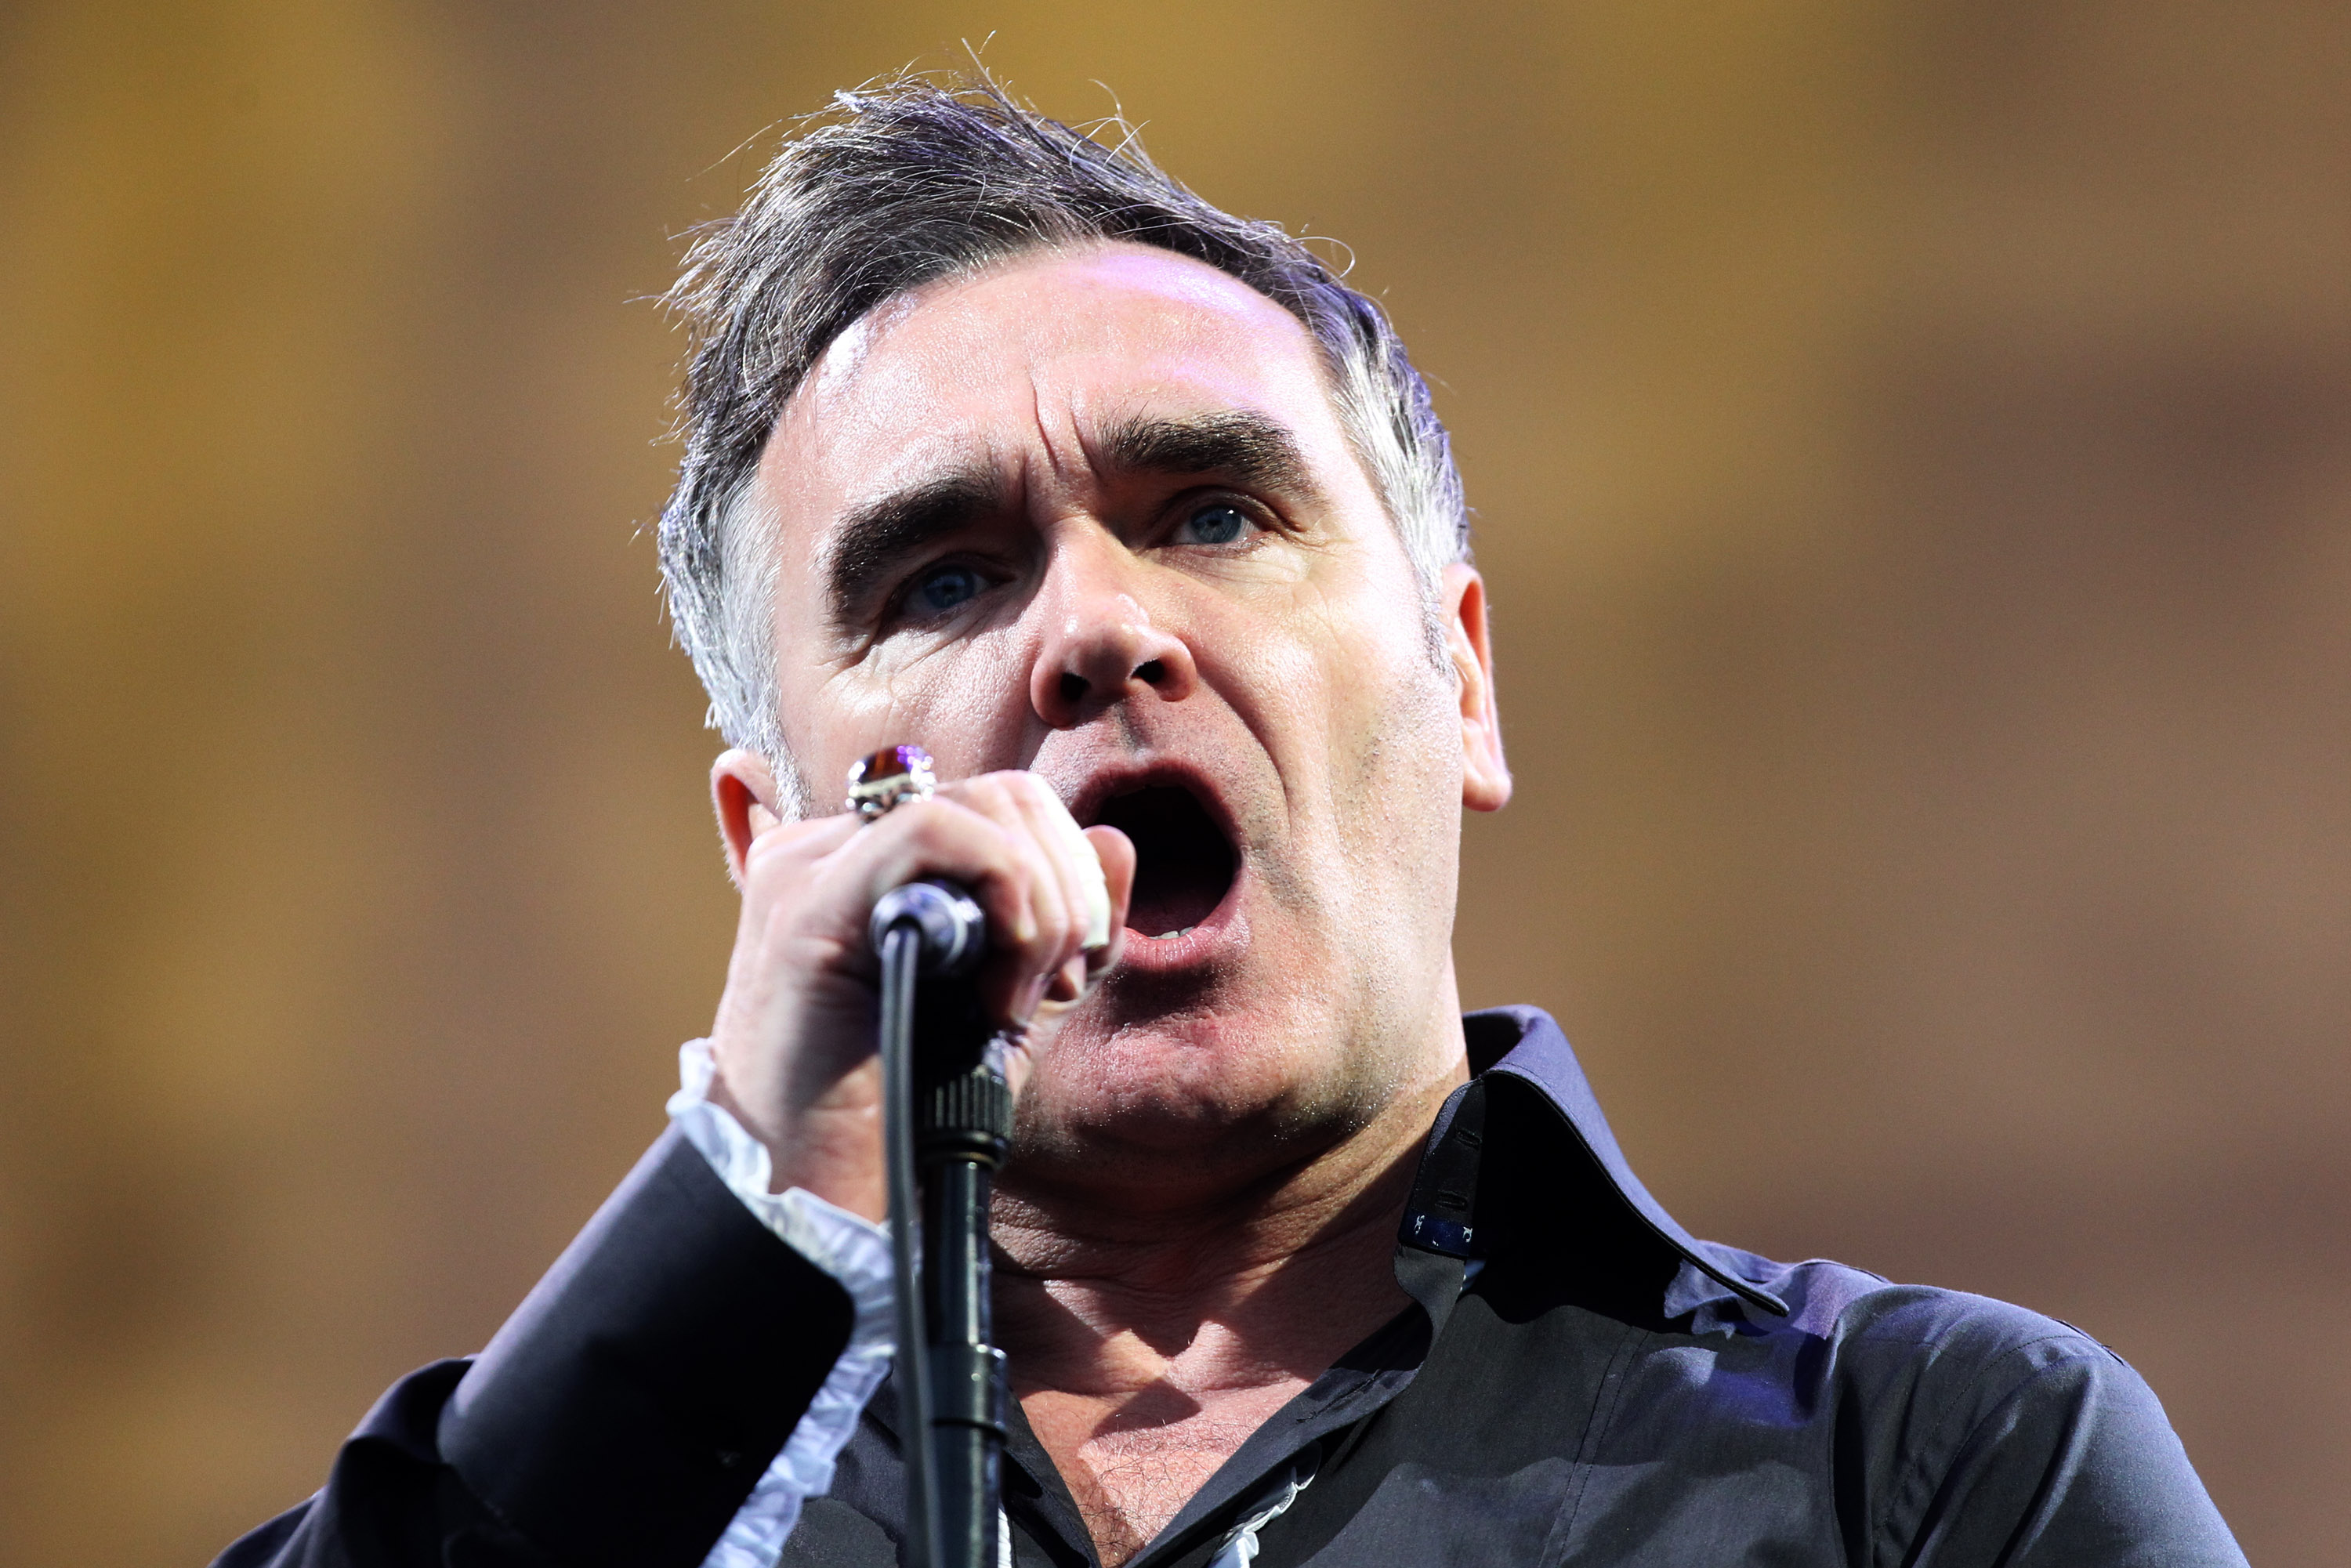 Productora argentina rechaza a Morrissey tras defender a Kevin Spacey